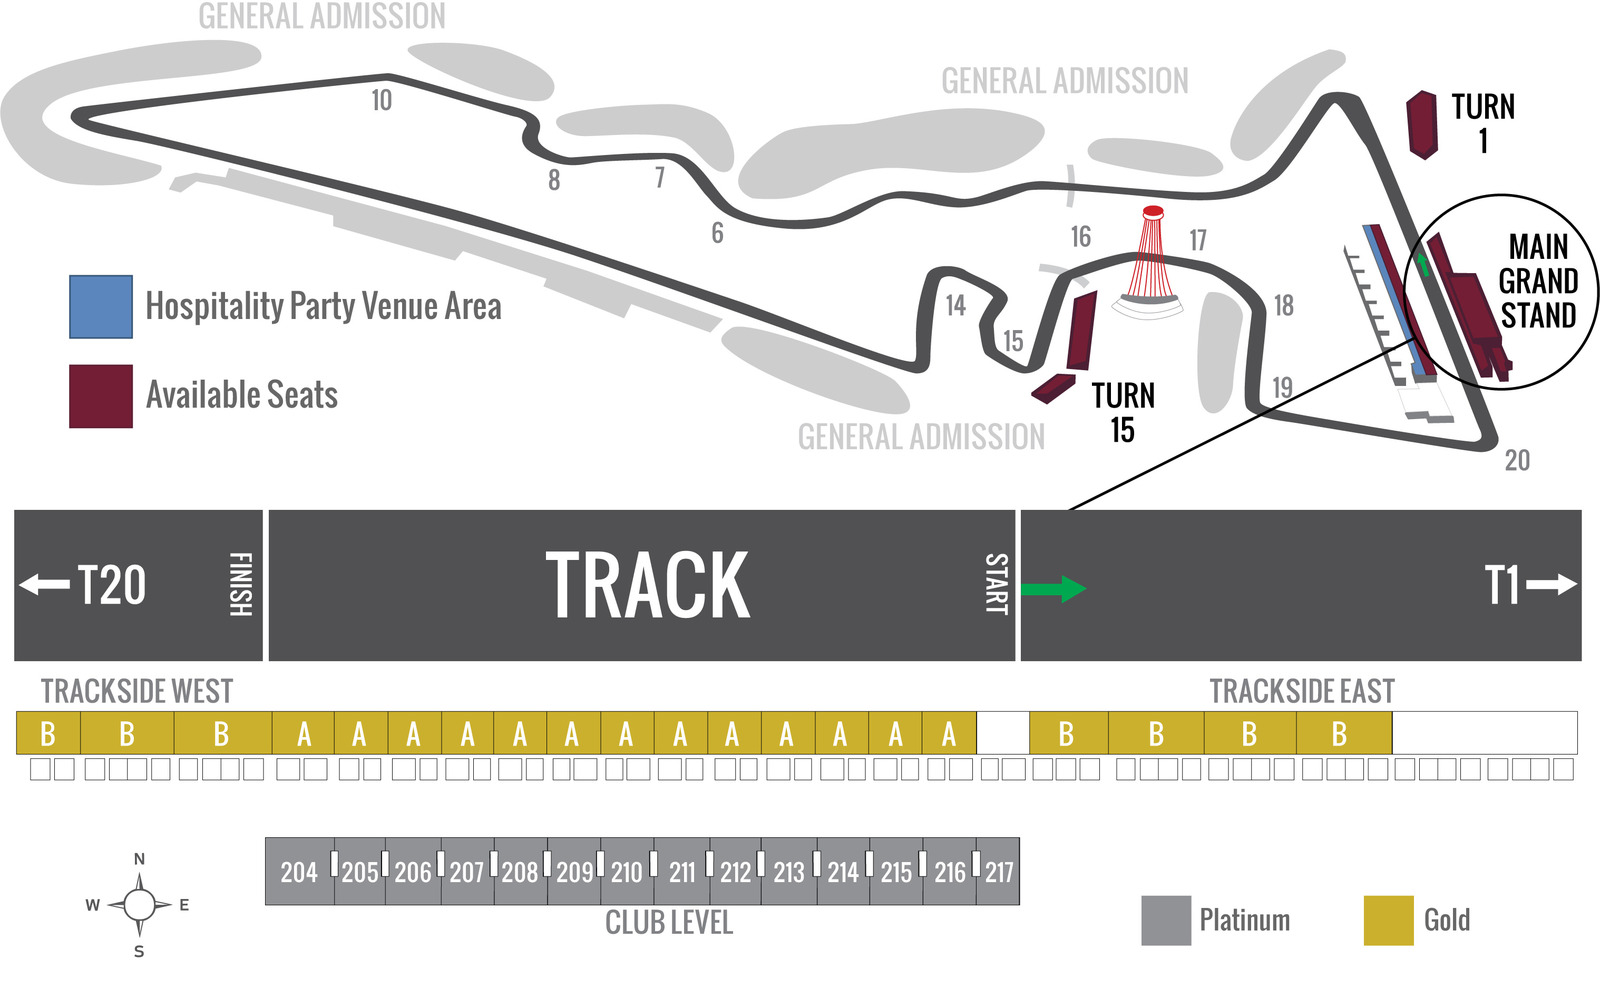 Quintevents-circuit-of-the-americas-experiences-2013-motogp-championship-seating-chart-all-seats